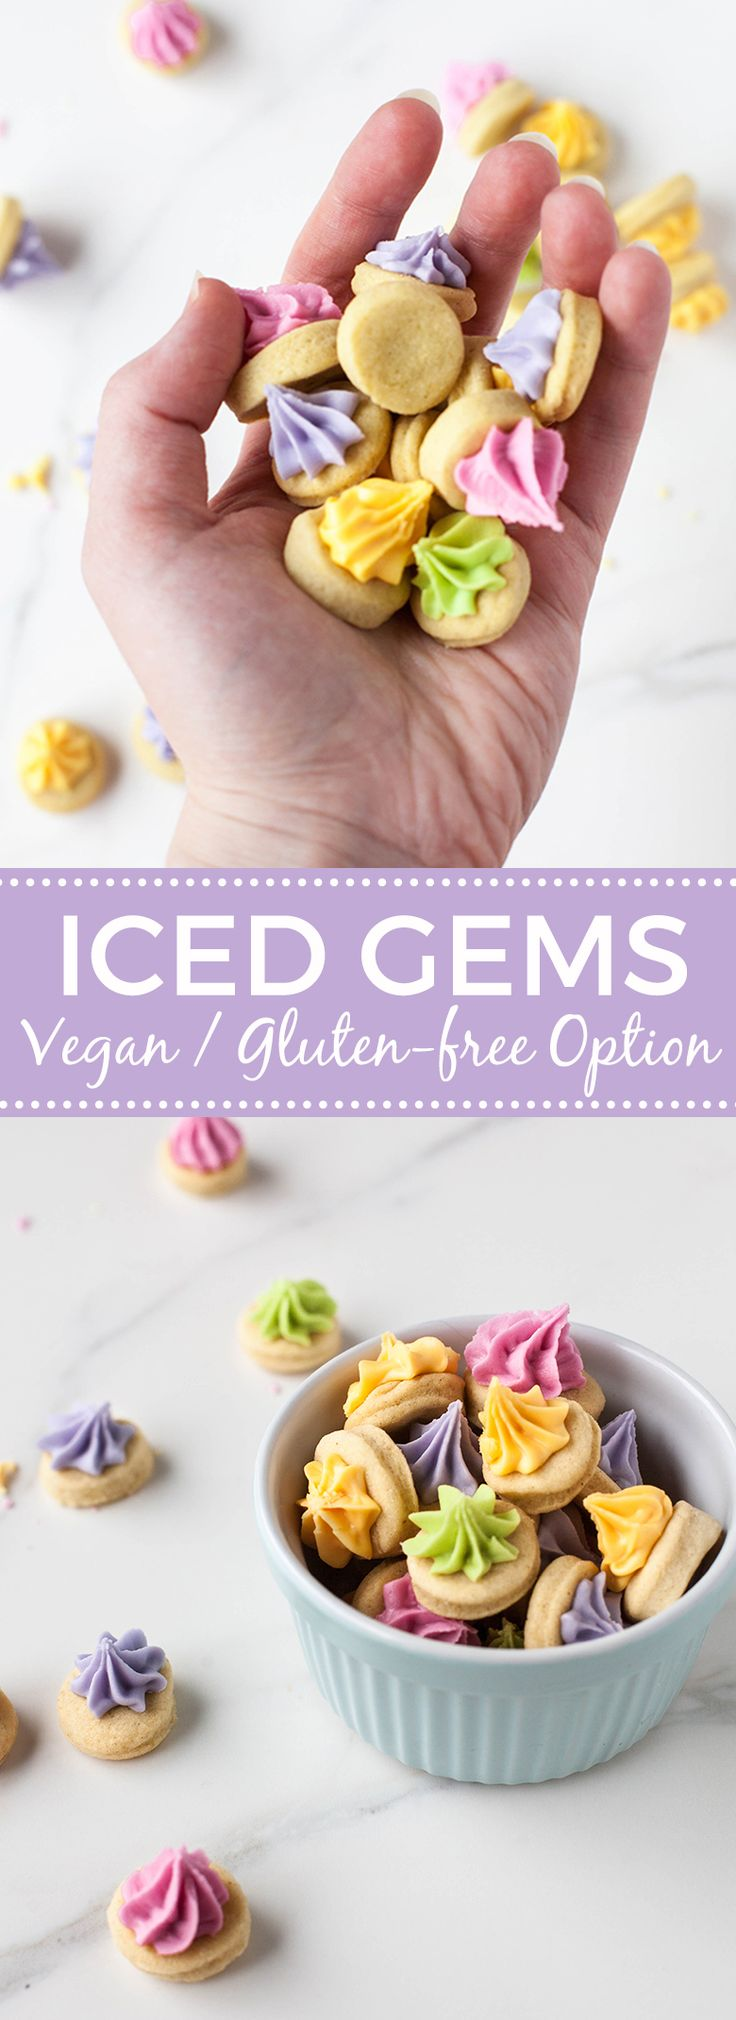 Vegan Iced Gems                                                                                                                                                     More